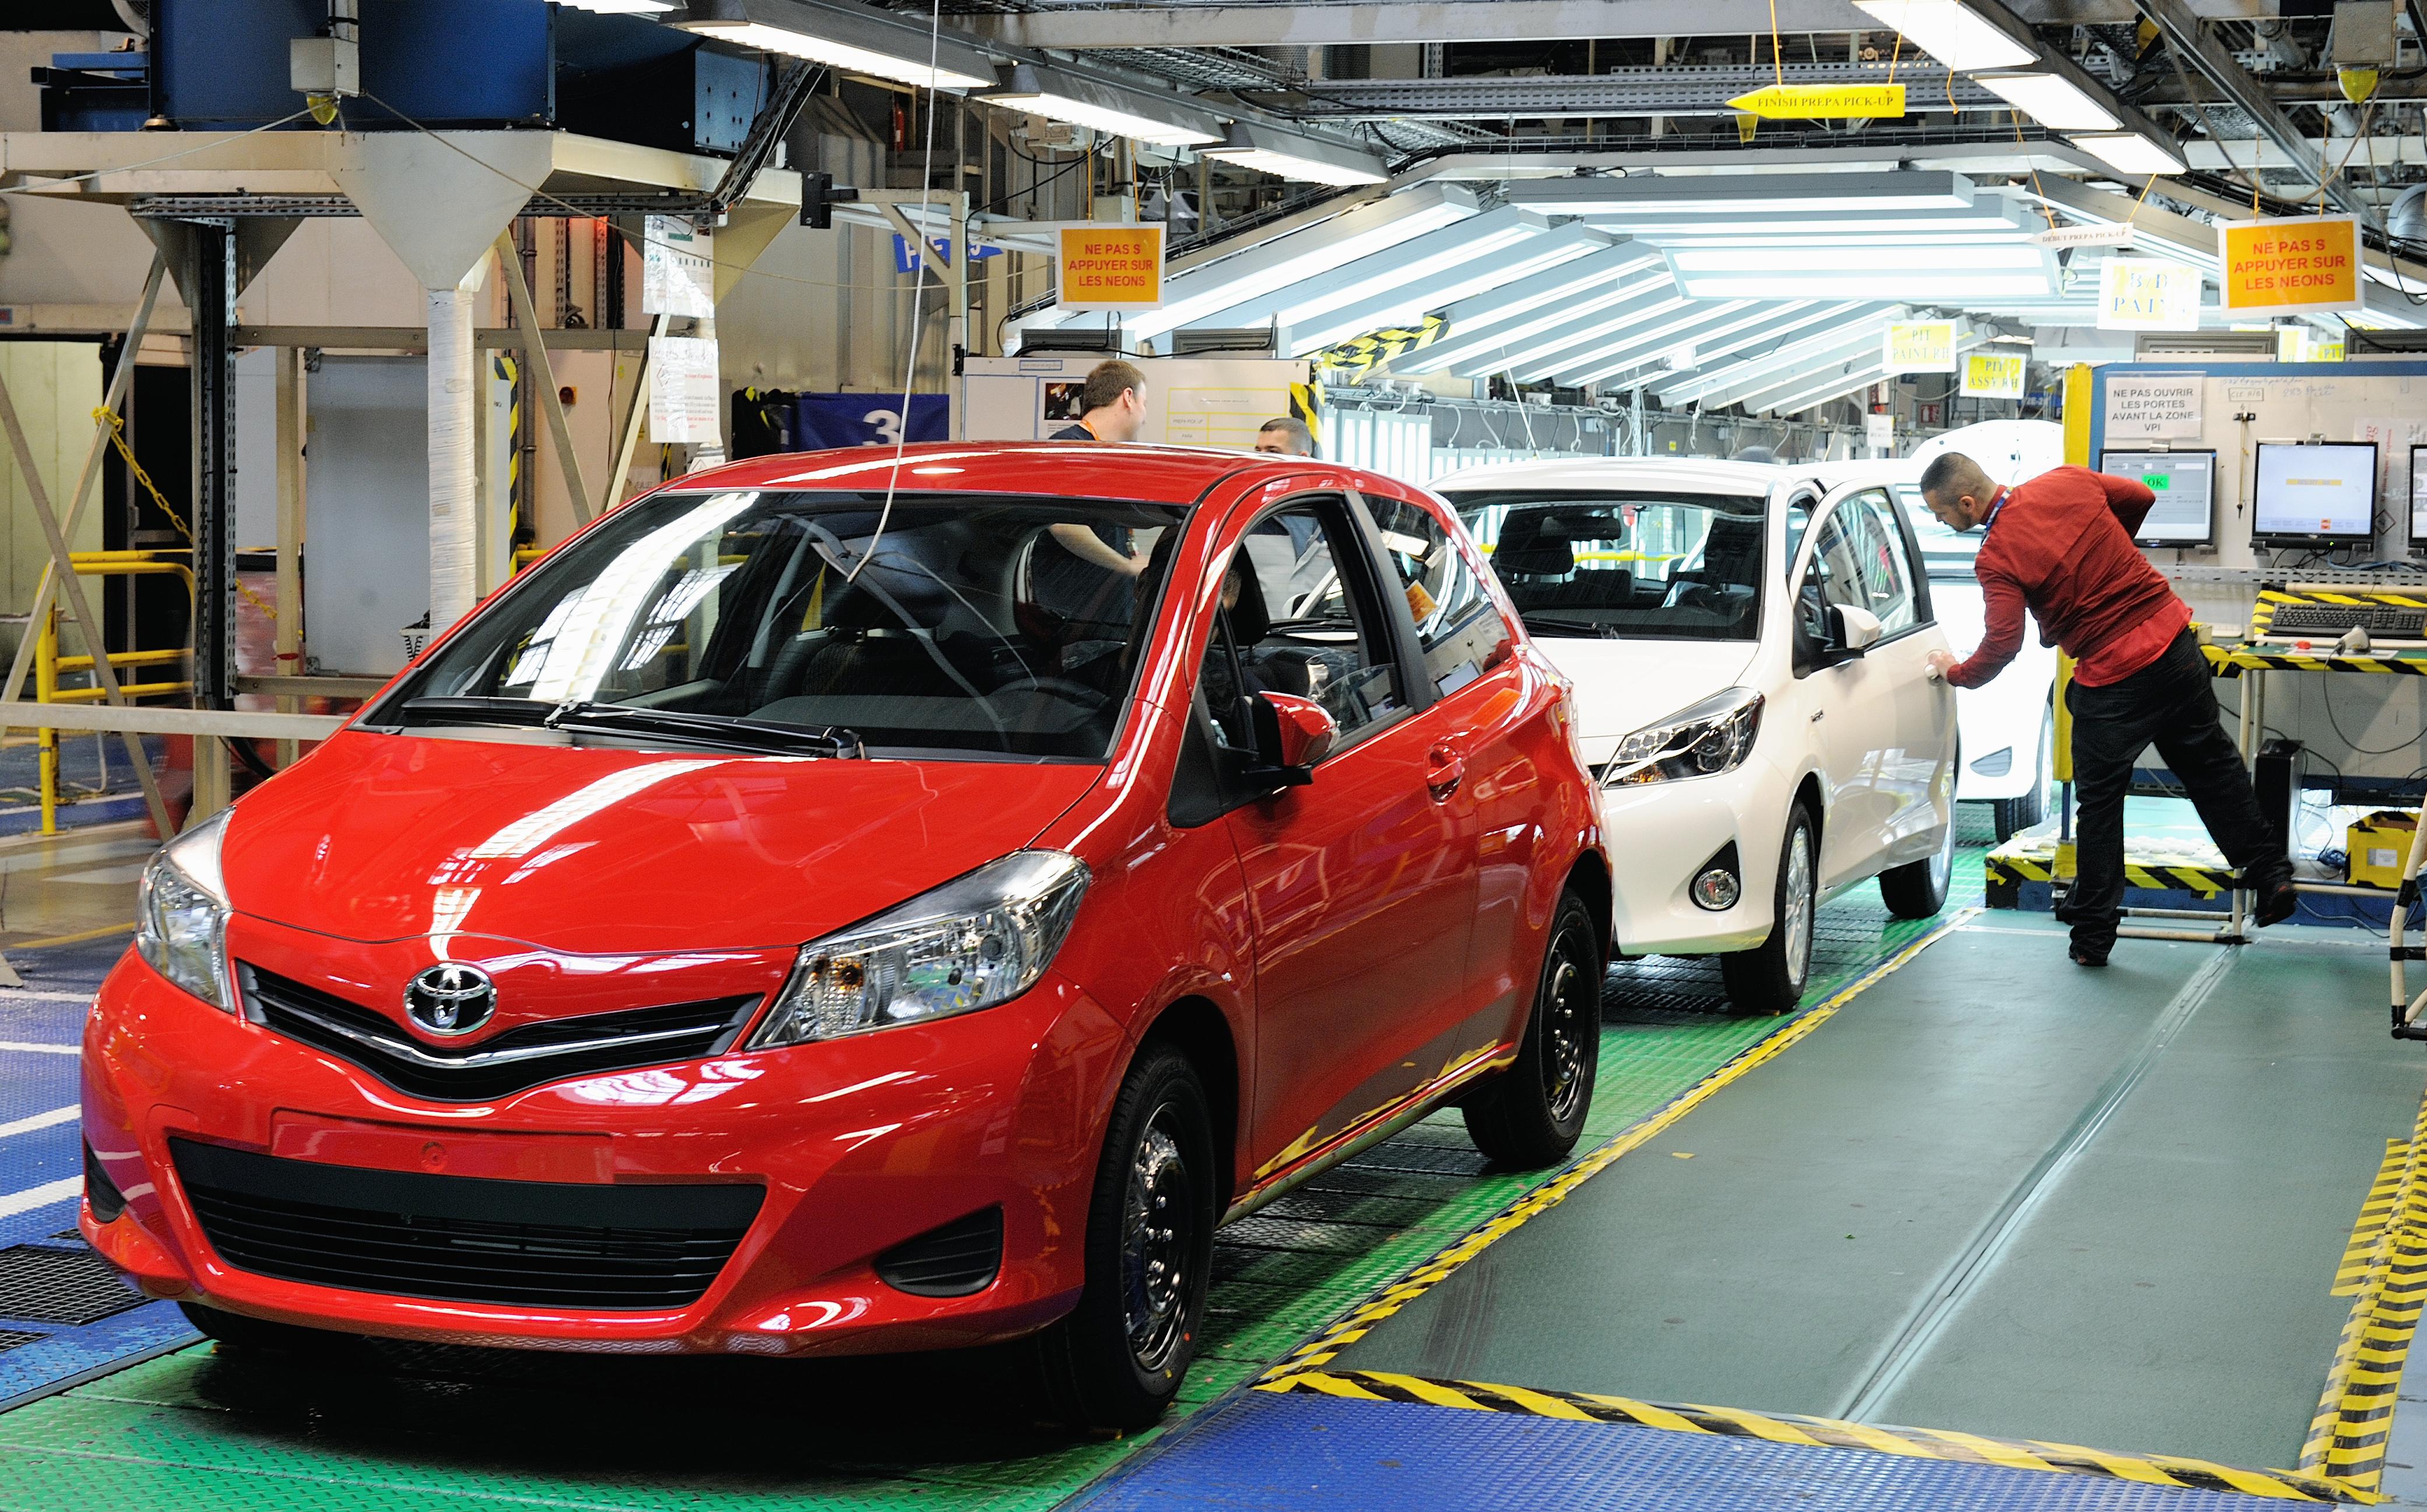 FRANCE-AUTOMOBILE-INDUSTRY-ECONOMY-TOYOTA